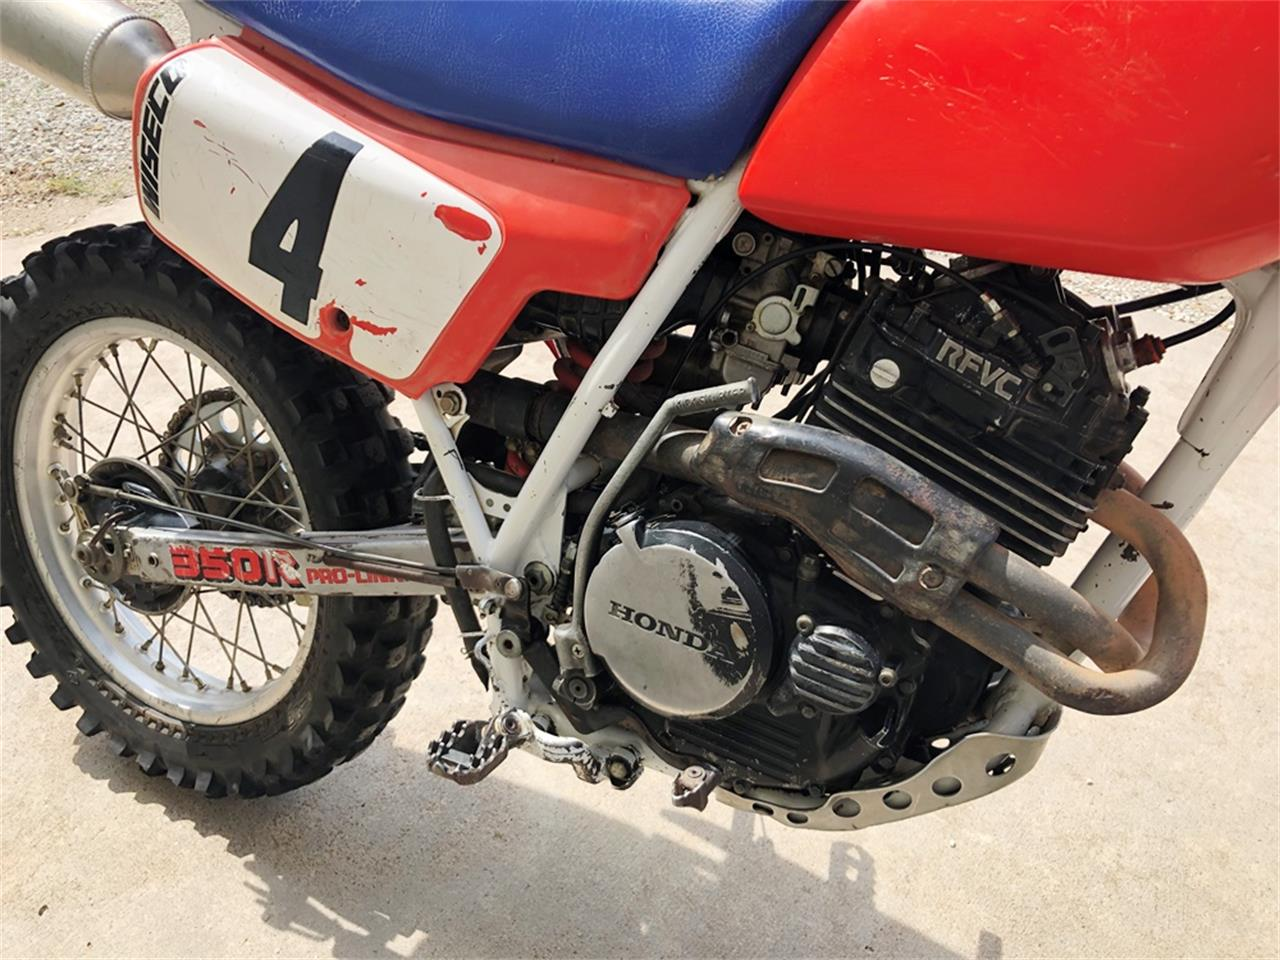 1984 Honda Motorcycle (CC-1262145) for sale in Great Bend, Kansas